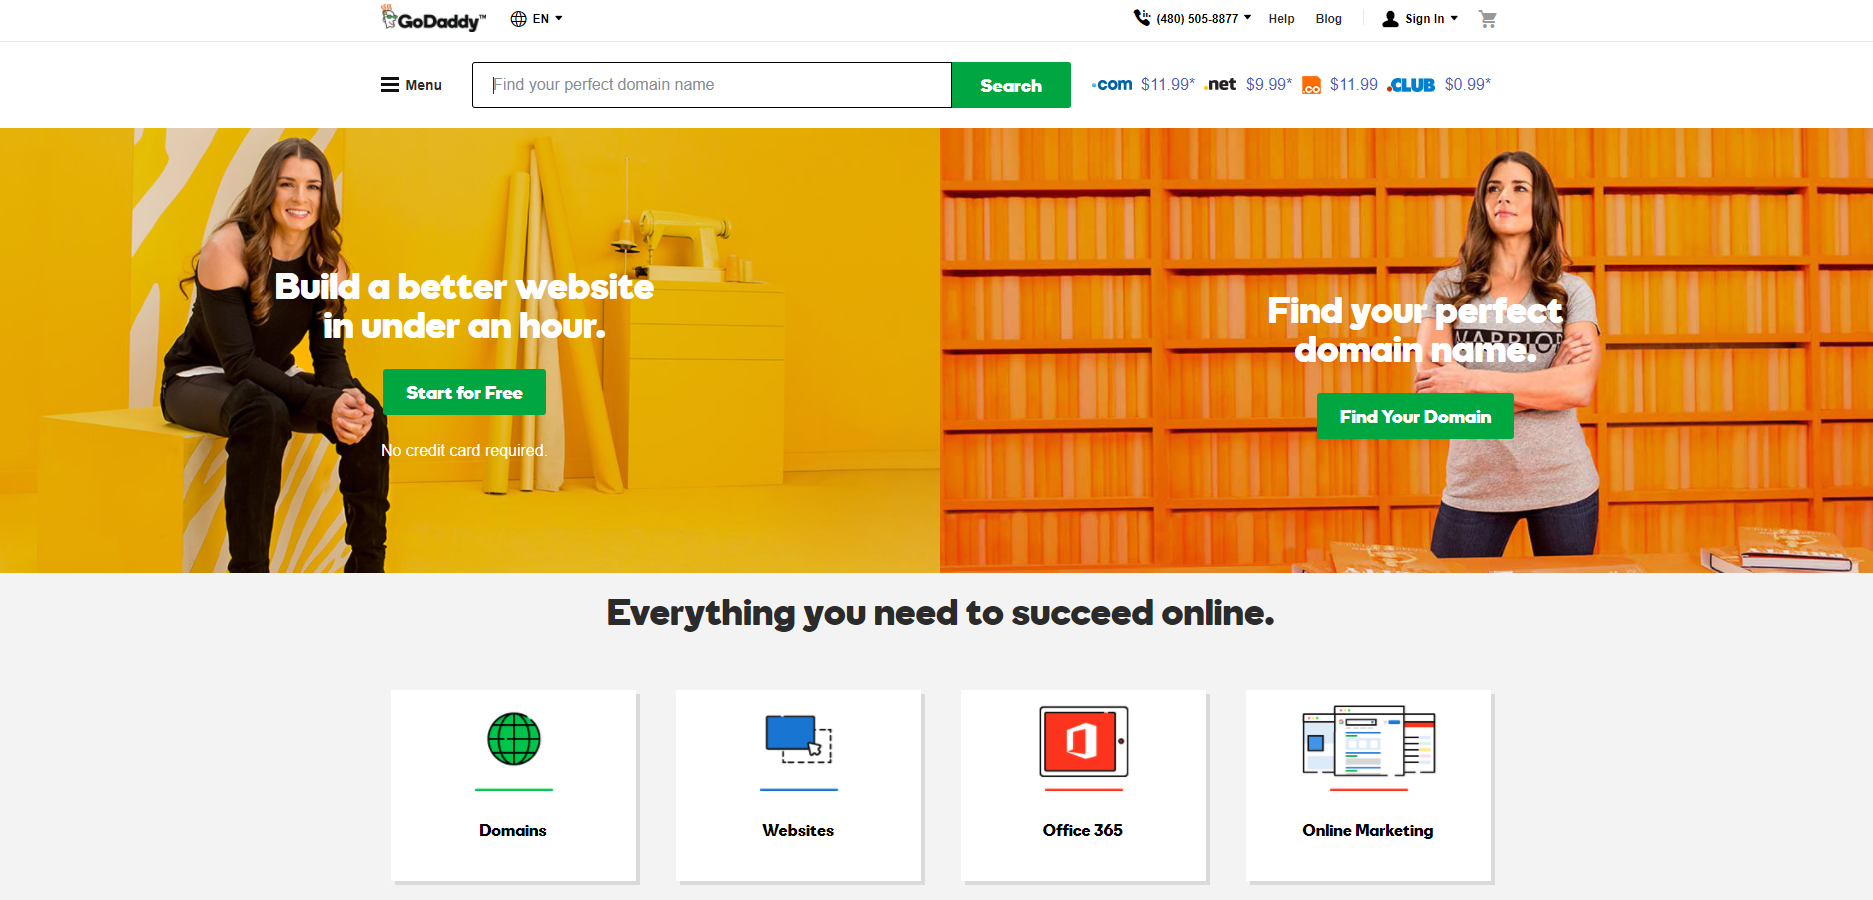 GoDaddy Review: The Most Popular Web Hosting Service